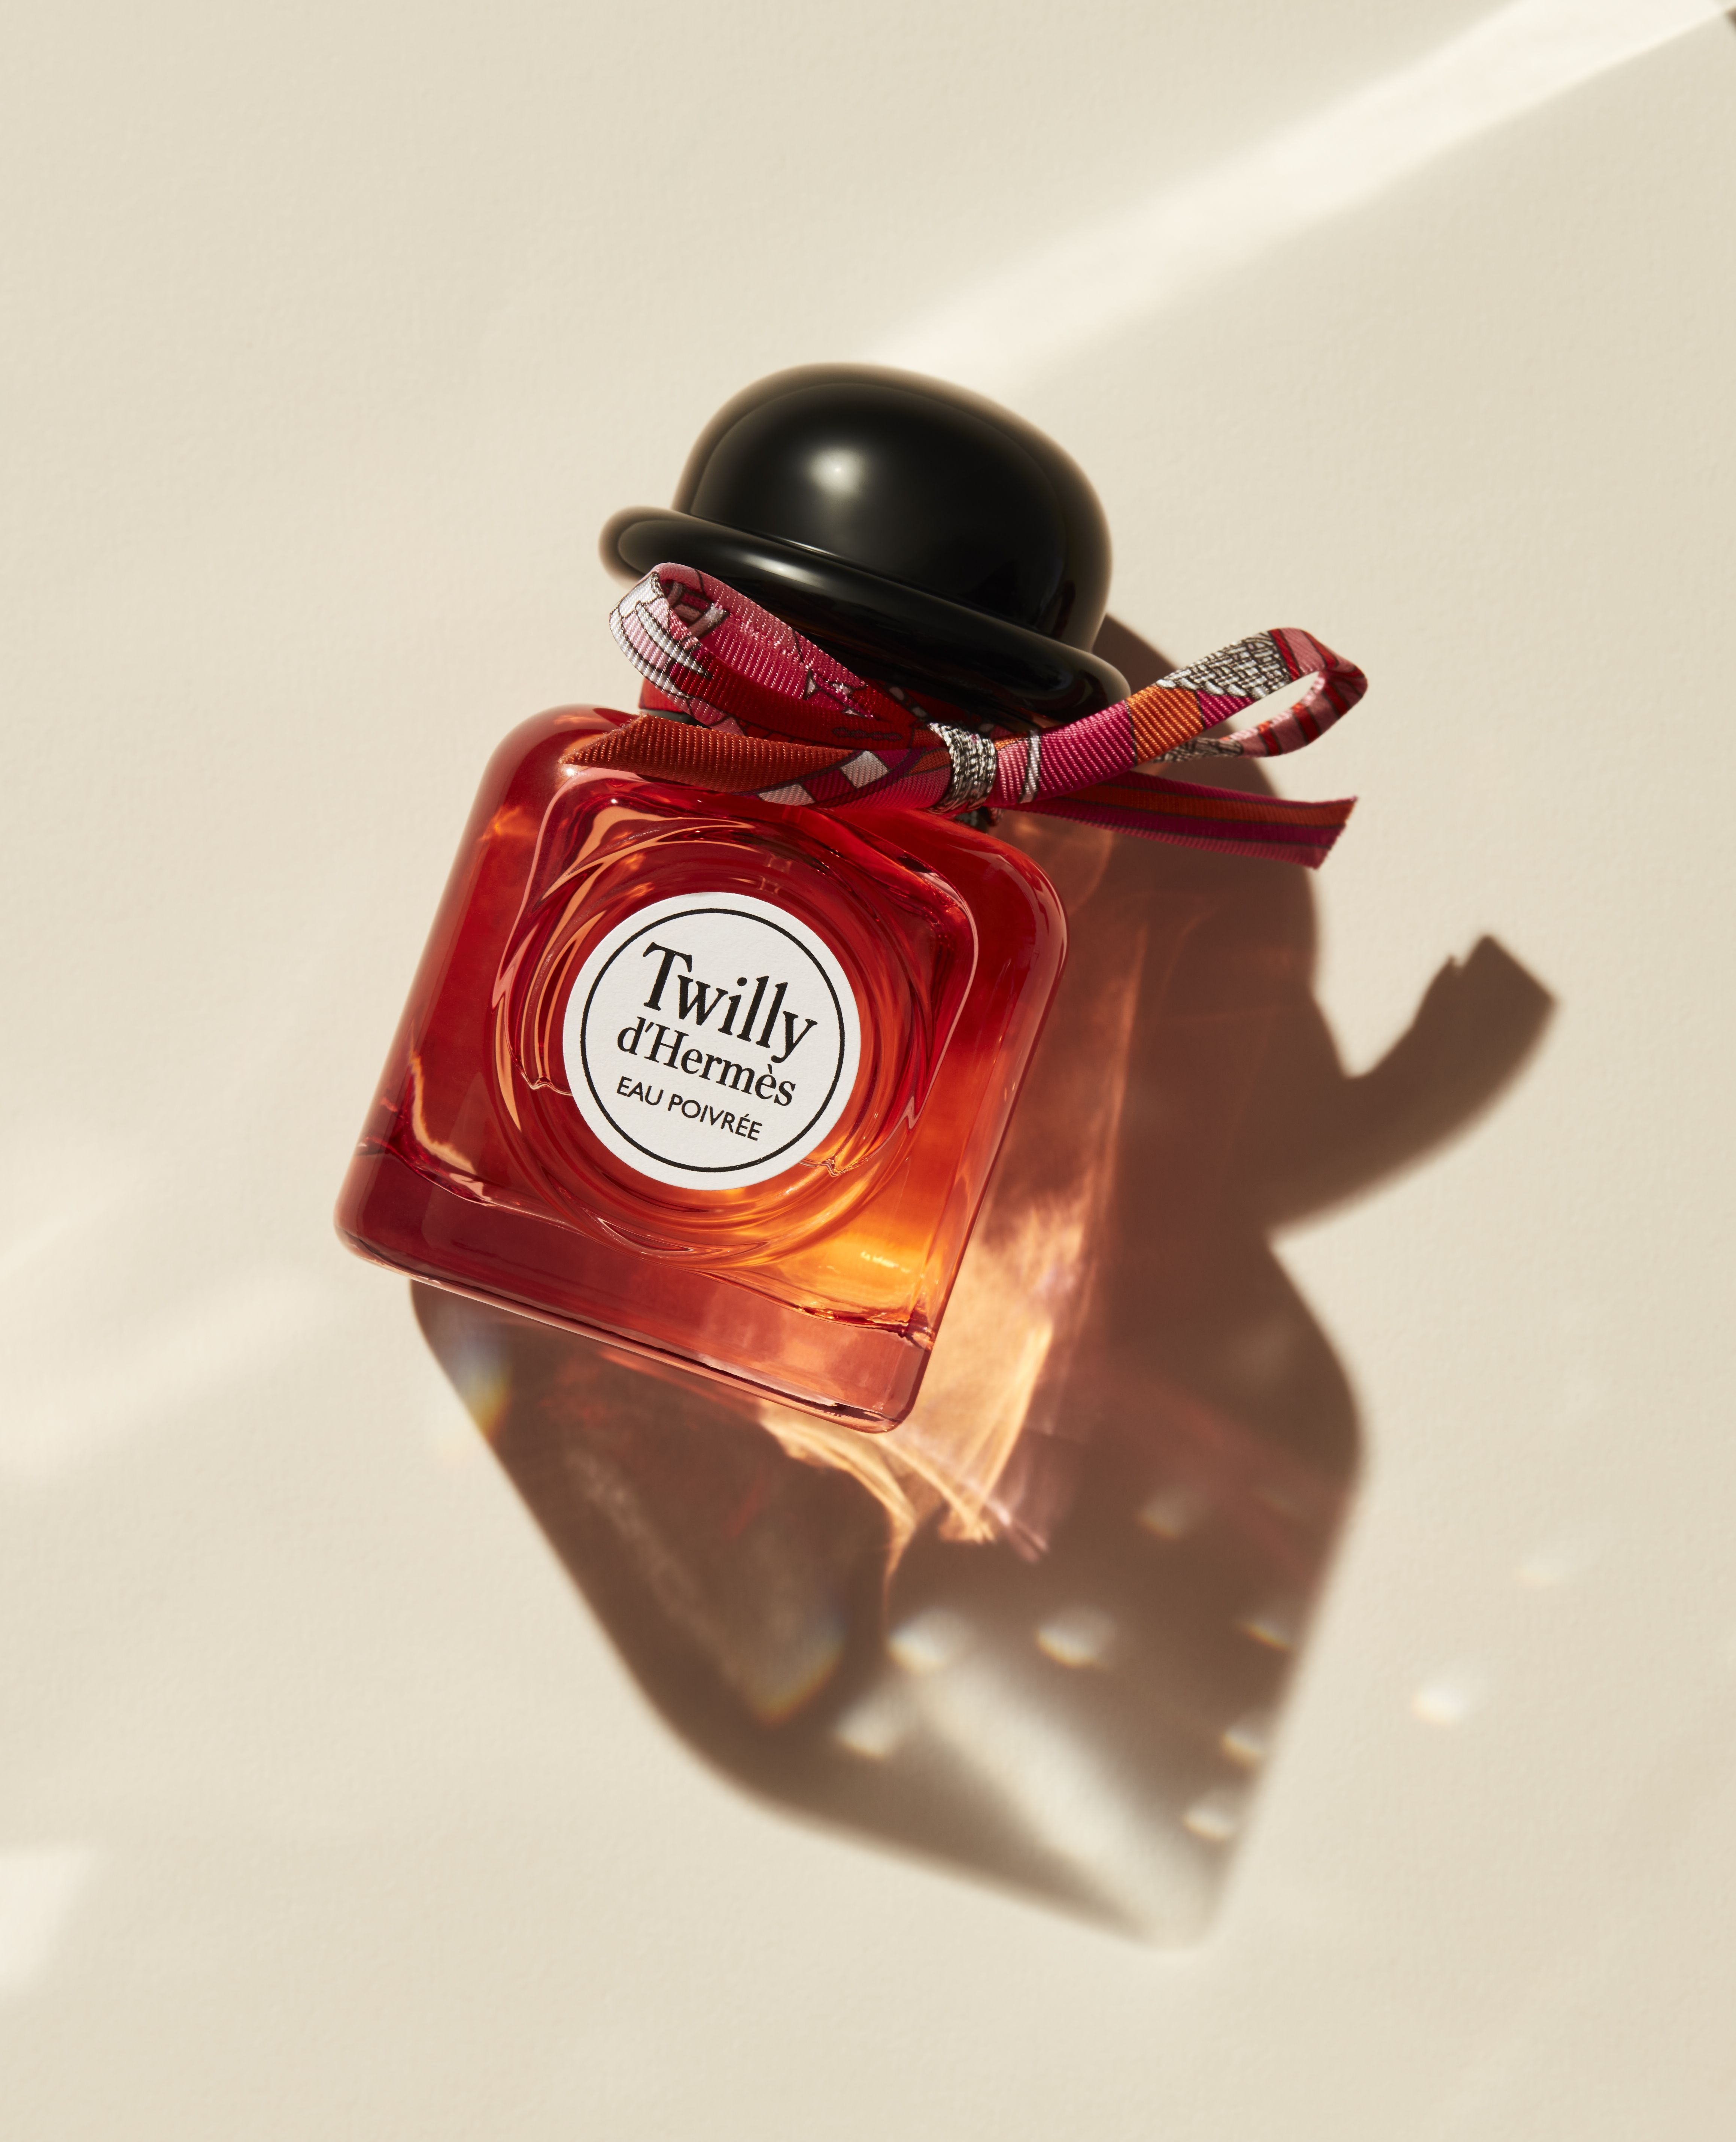 Twilly D Hermes In Fimaron Hermes Perfume Twilly Perfume